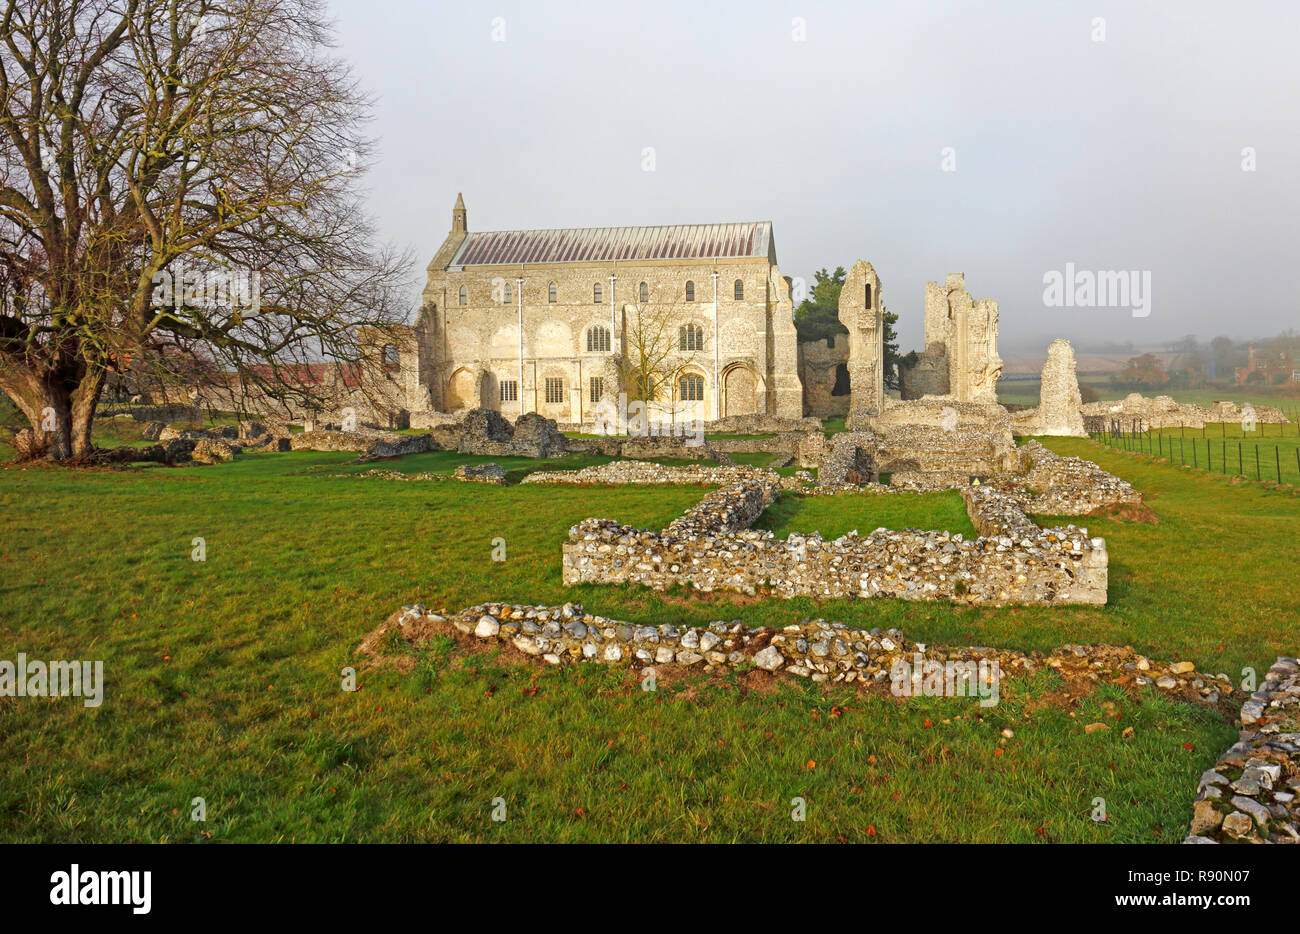 A view of the Priory Church and excavated Benedictine monastic ruins at Binham, Norfolk, England, United Kingdom, Europe. - Stock Image